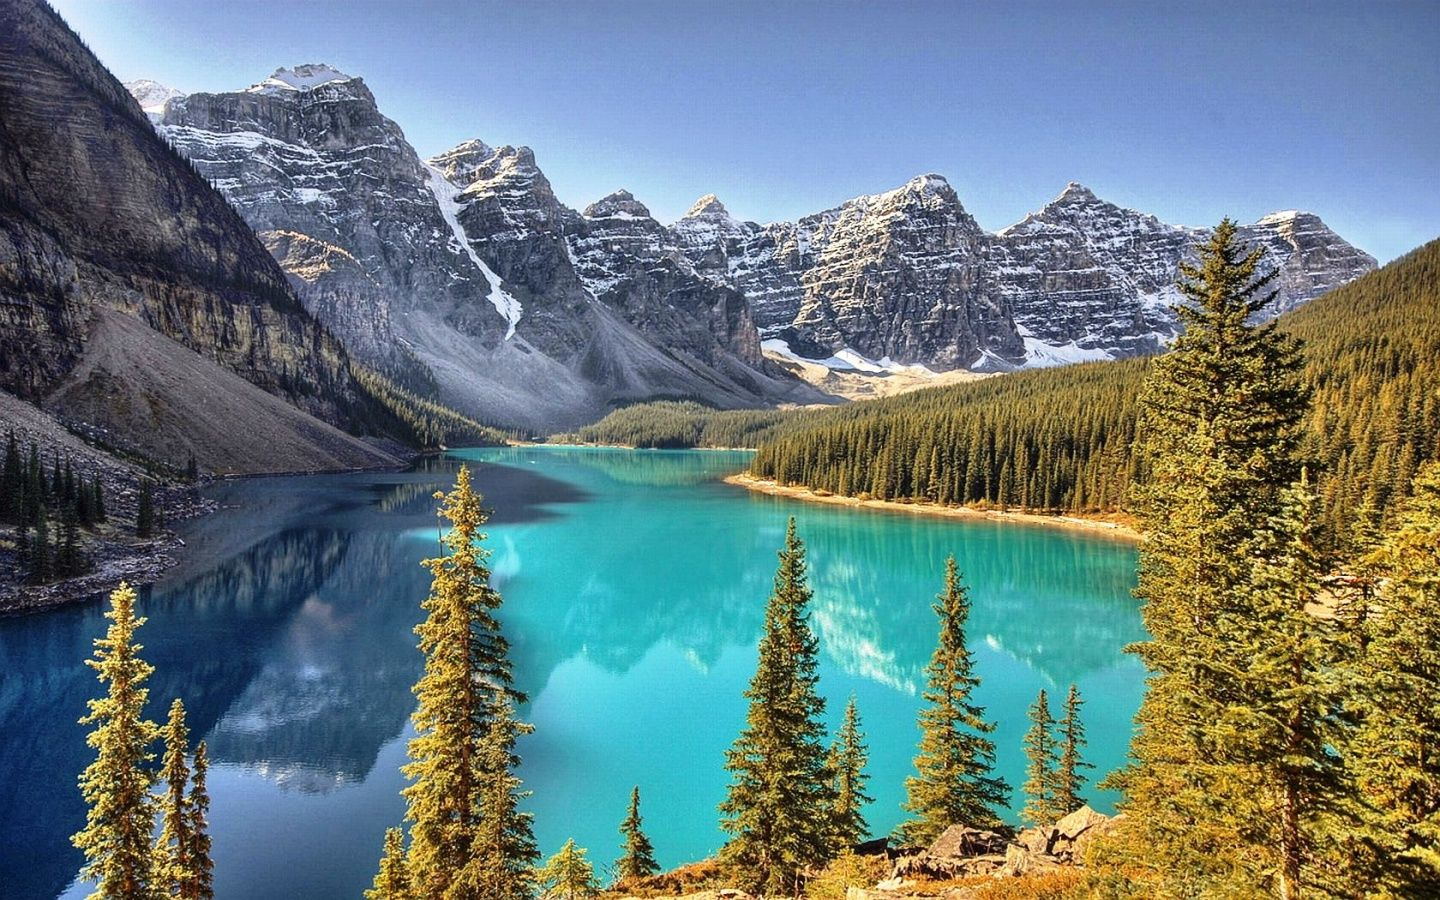 Blue mountain free screensavers my family would love travel there until my family can afford it - Mountain screensavers free ...